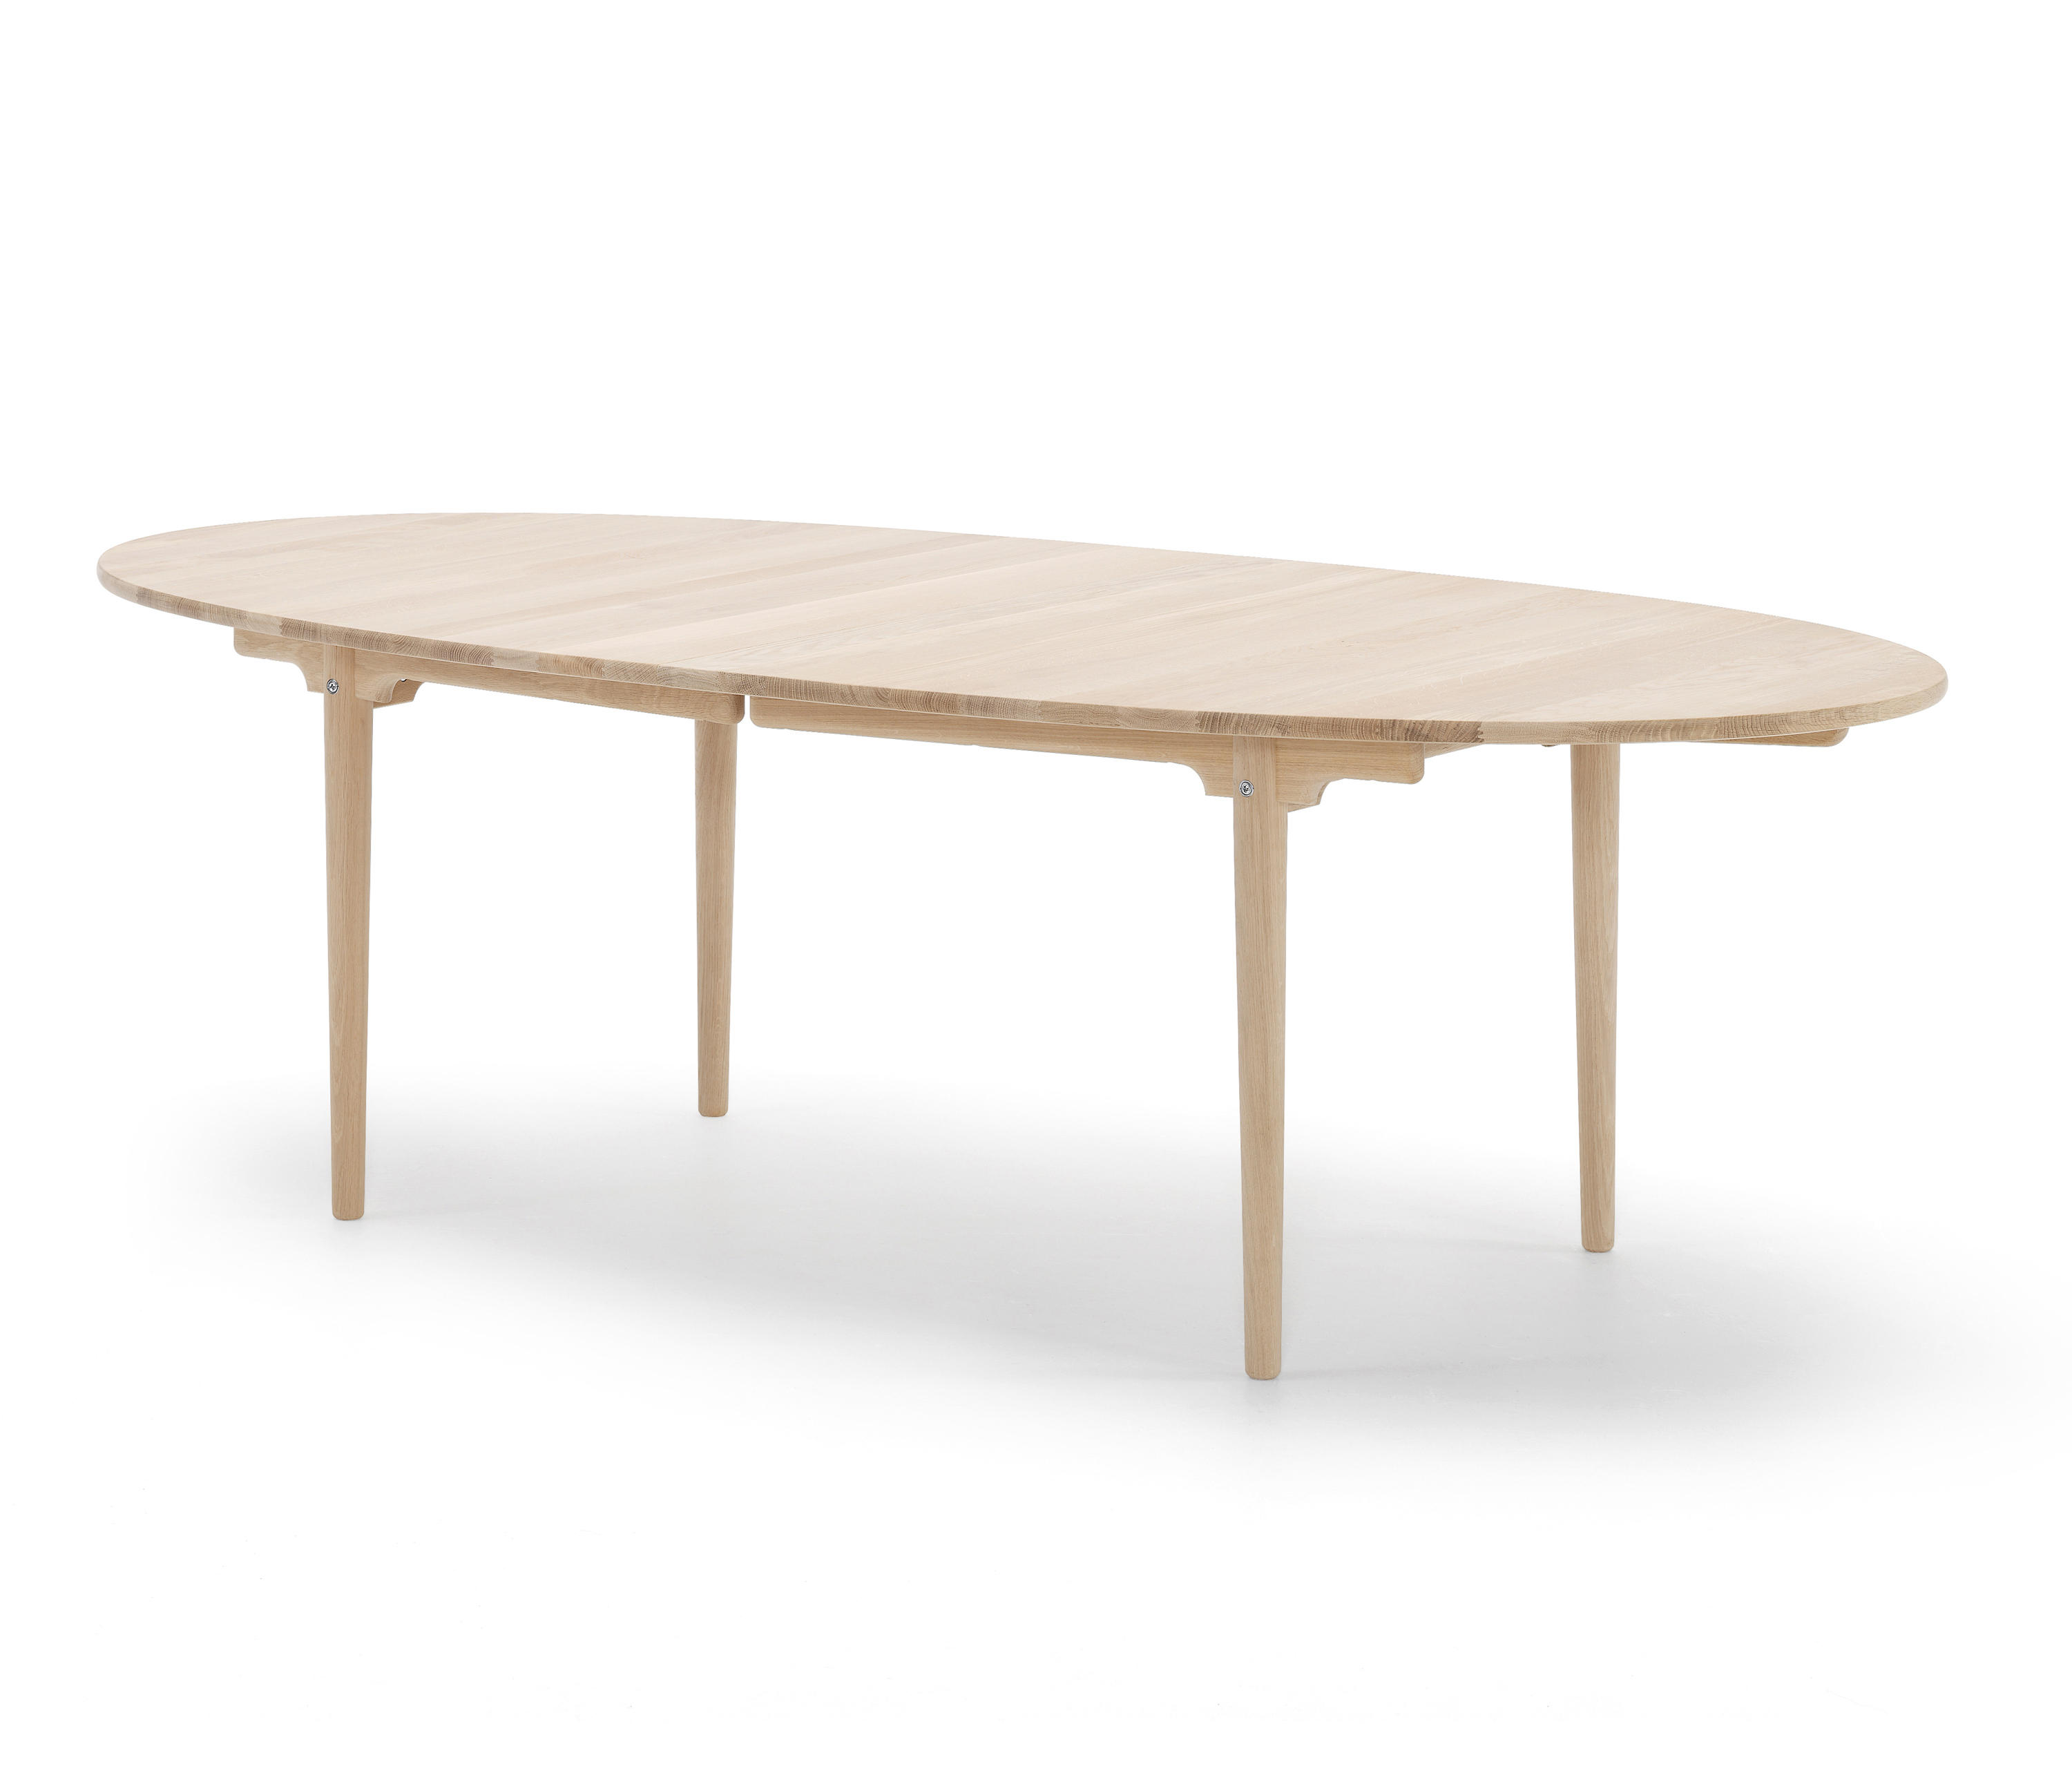 CH339 Dining tables from Carl Hansen & S¸n